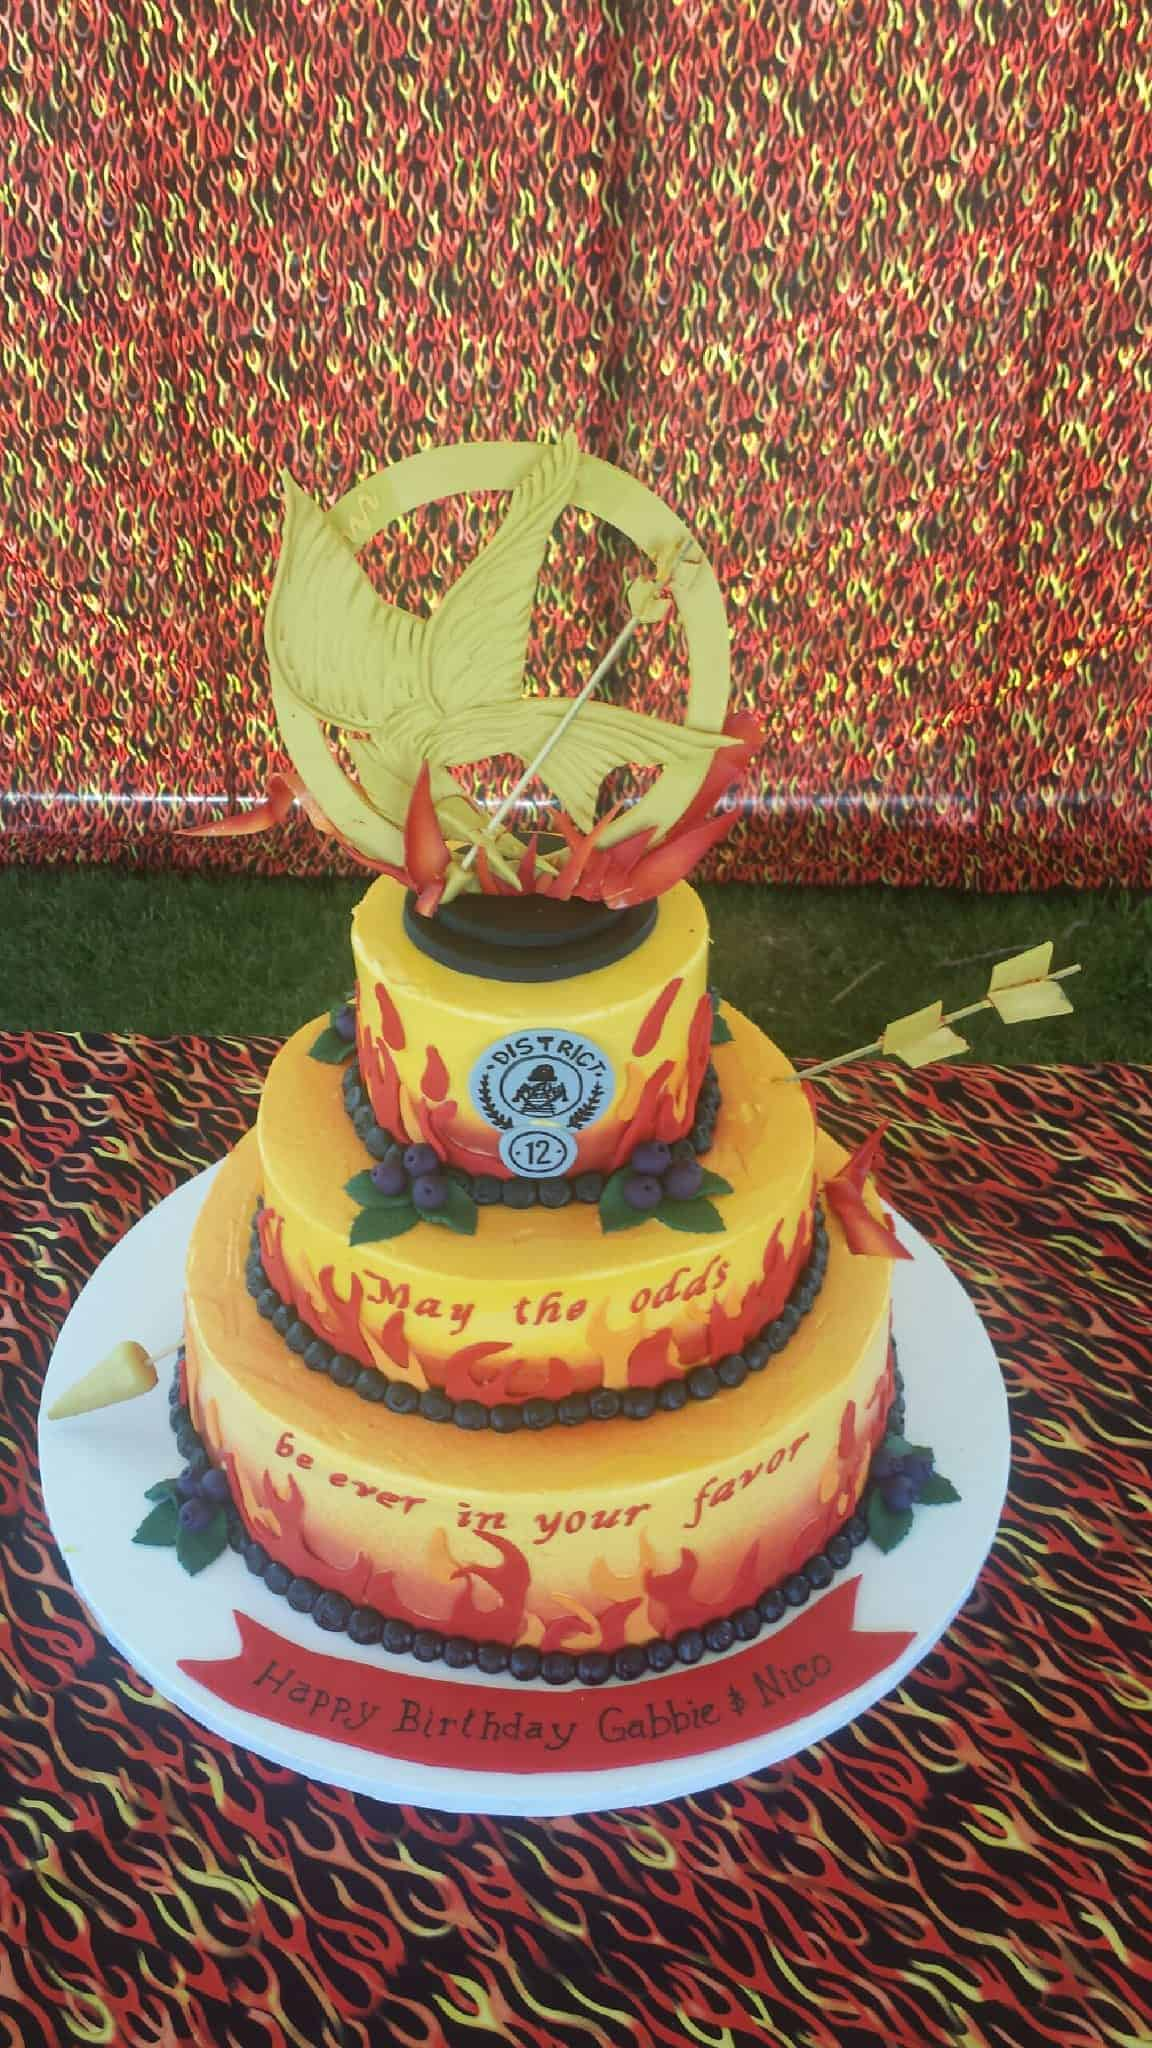 Fire and Archery Birthday Cake